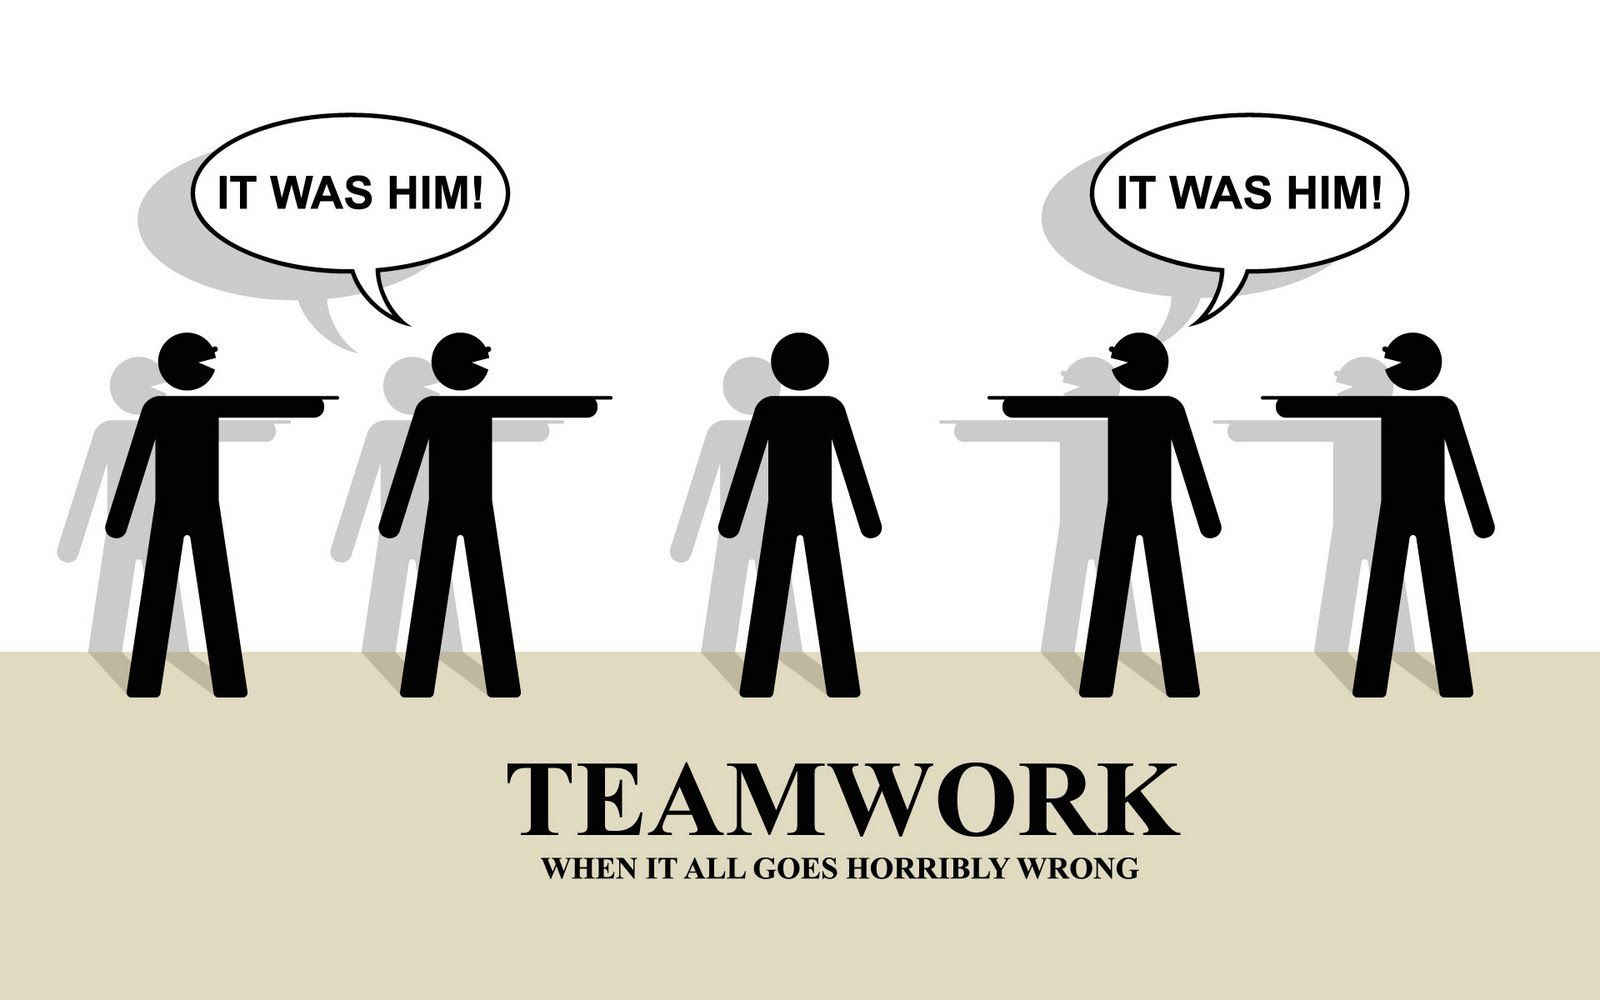 Funny Office Teamwork Quotes League of legends memes